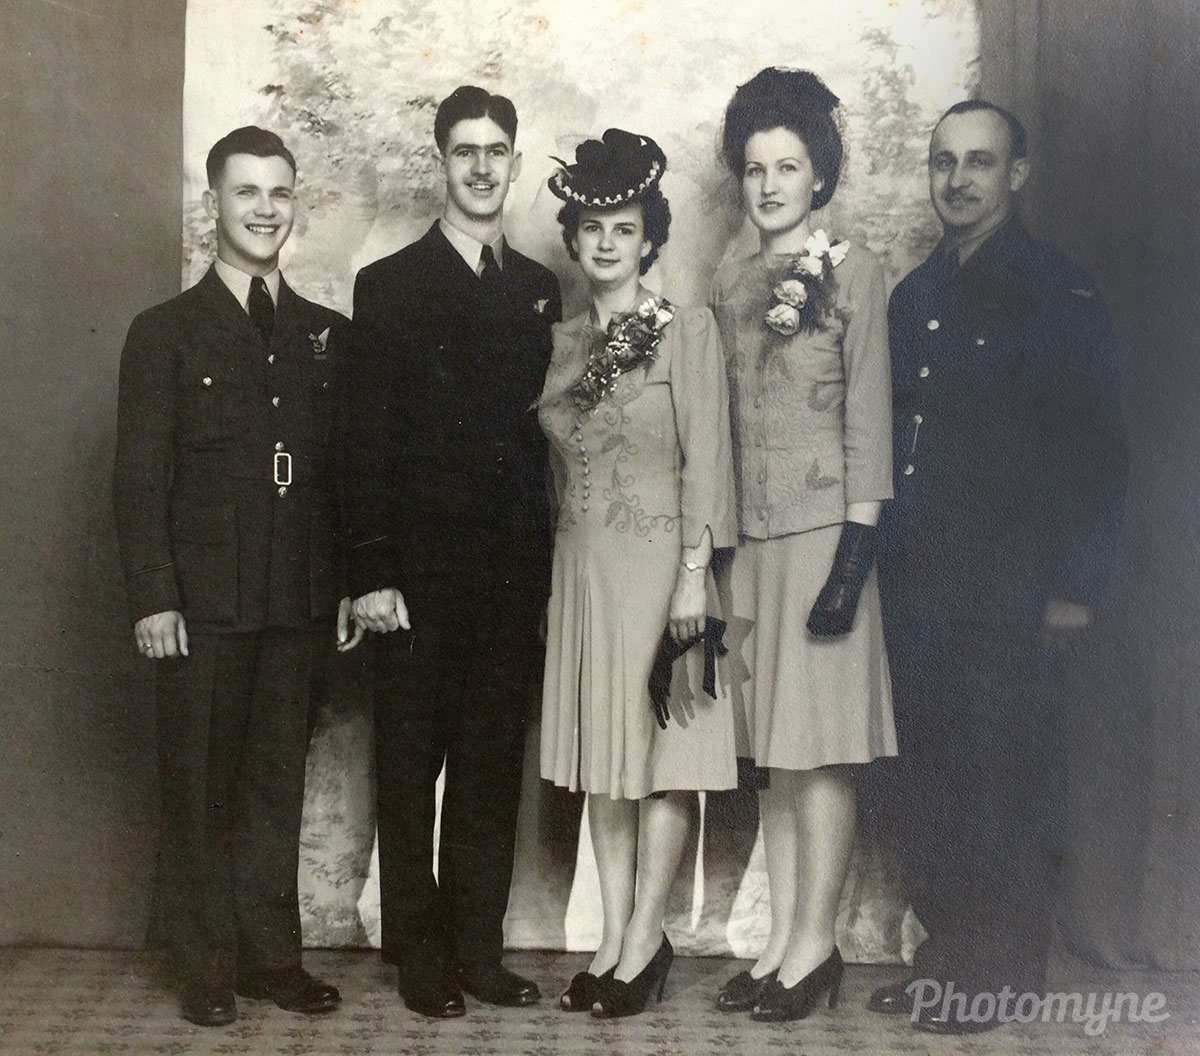 My parent's wedding May 31, 1944. Sadly, Dad went overseas shortly after and his Wellington Bomber crashed killing all the crew. Fortunately, my mother was pregnant with me. I was the only child of the 4 men in my dad's family who were all flyers who died in WW2, Portage La Prairie, Manitoba, Canada, 1944